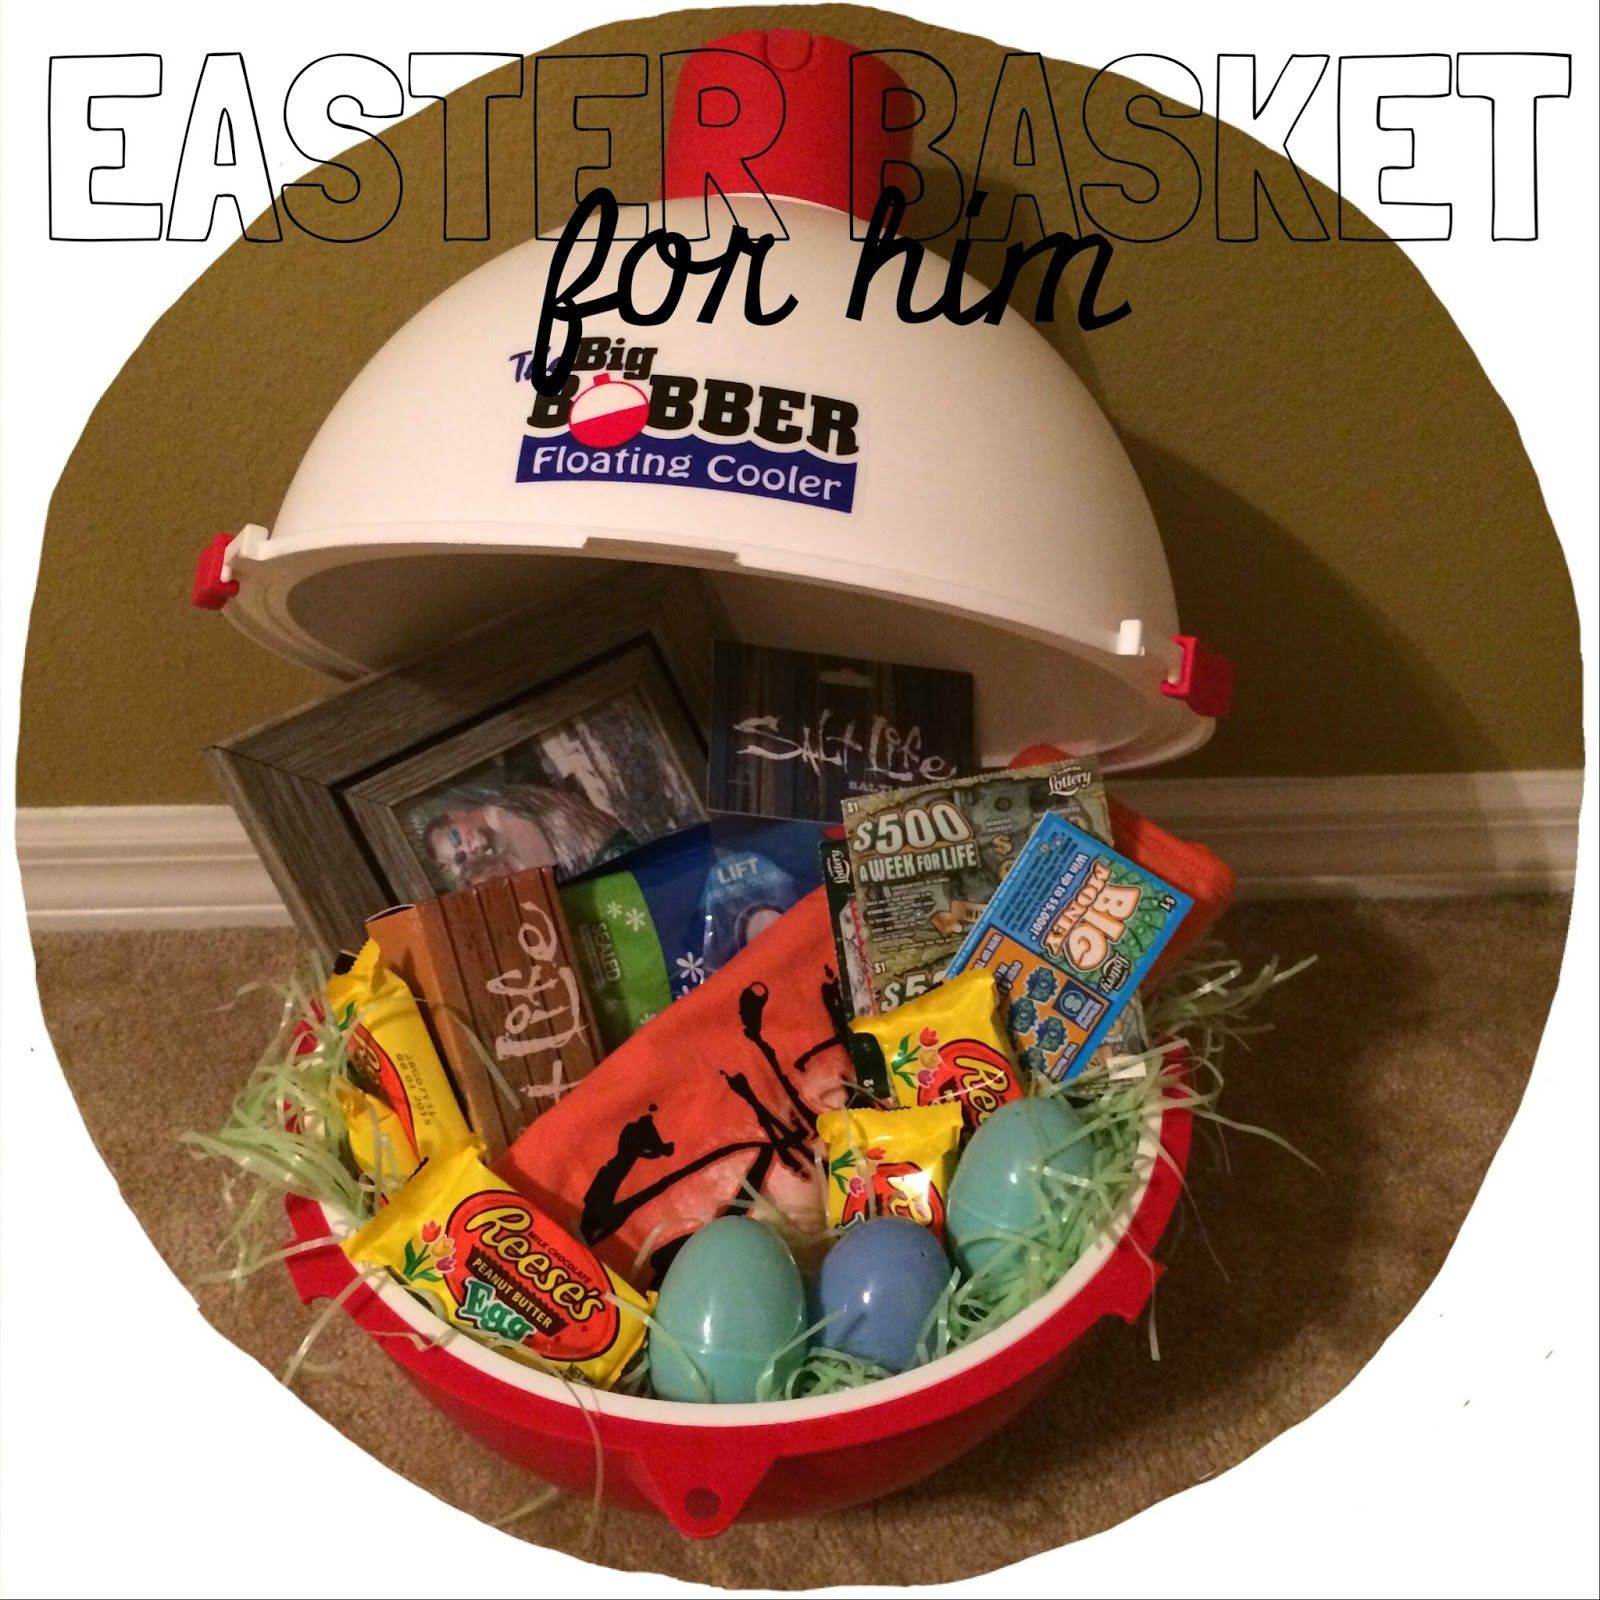 Easter basket for him man basket fishing easter basket easter basket for him man basket fishing easter basket negle Choice Image